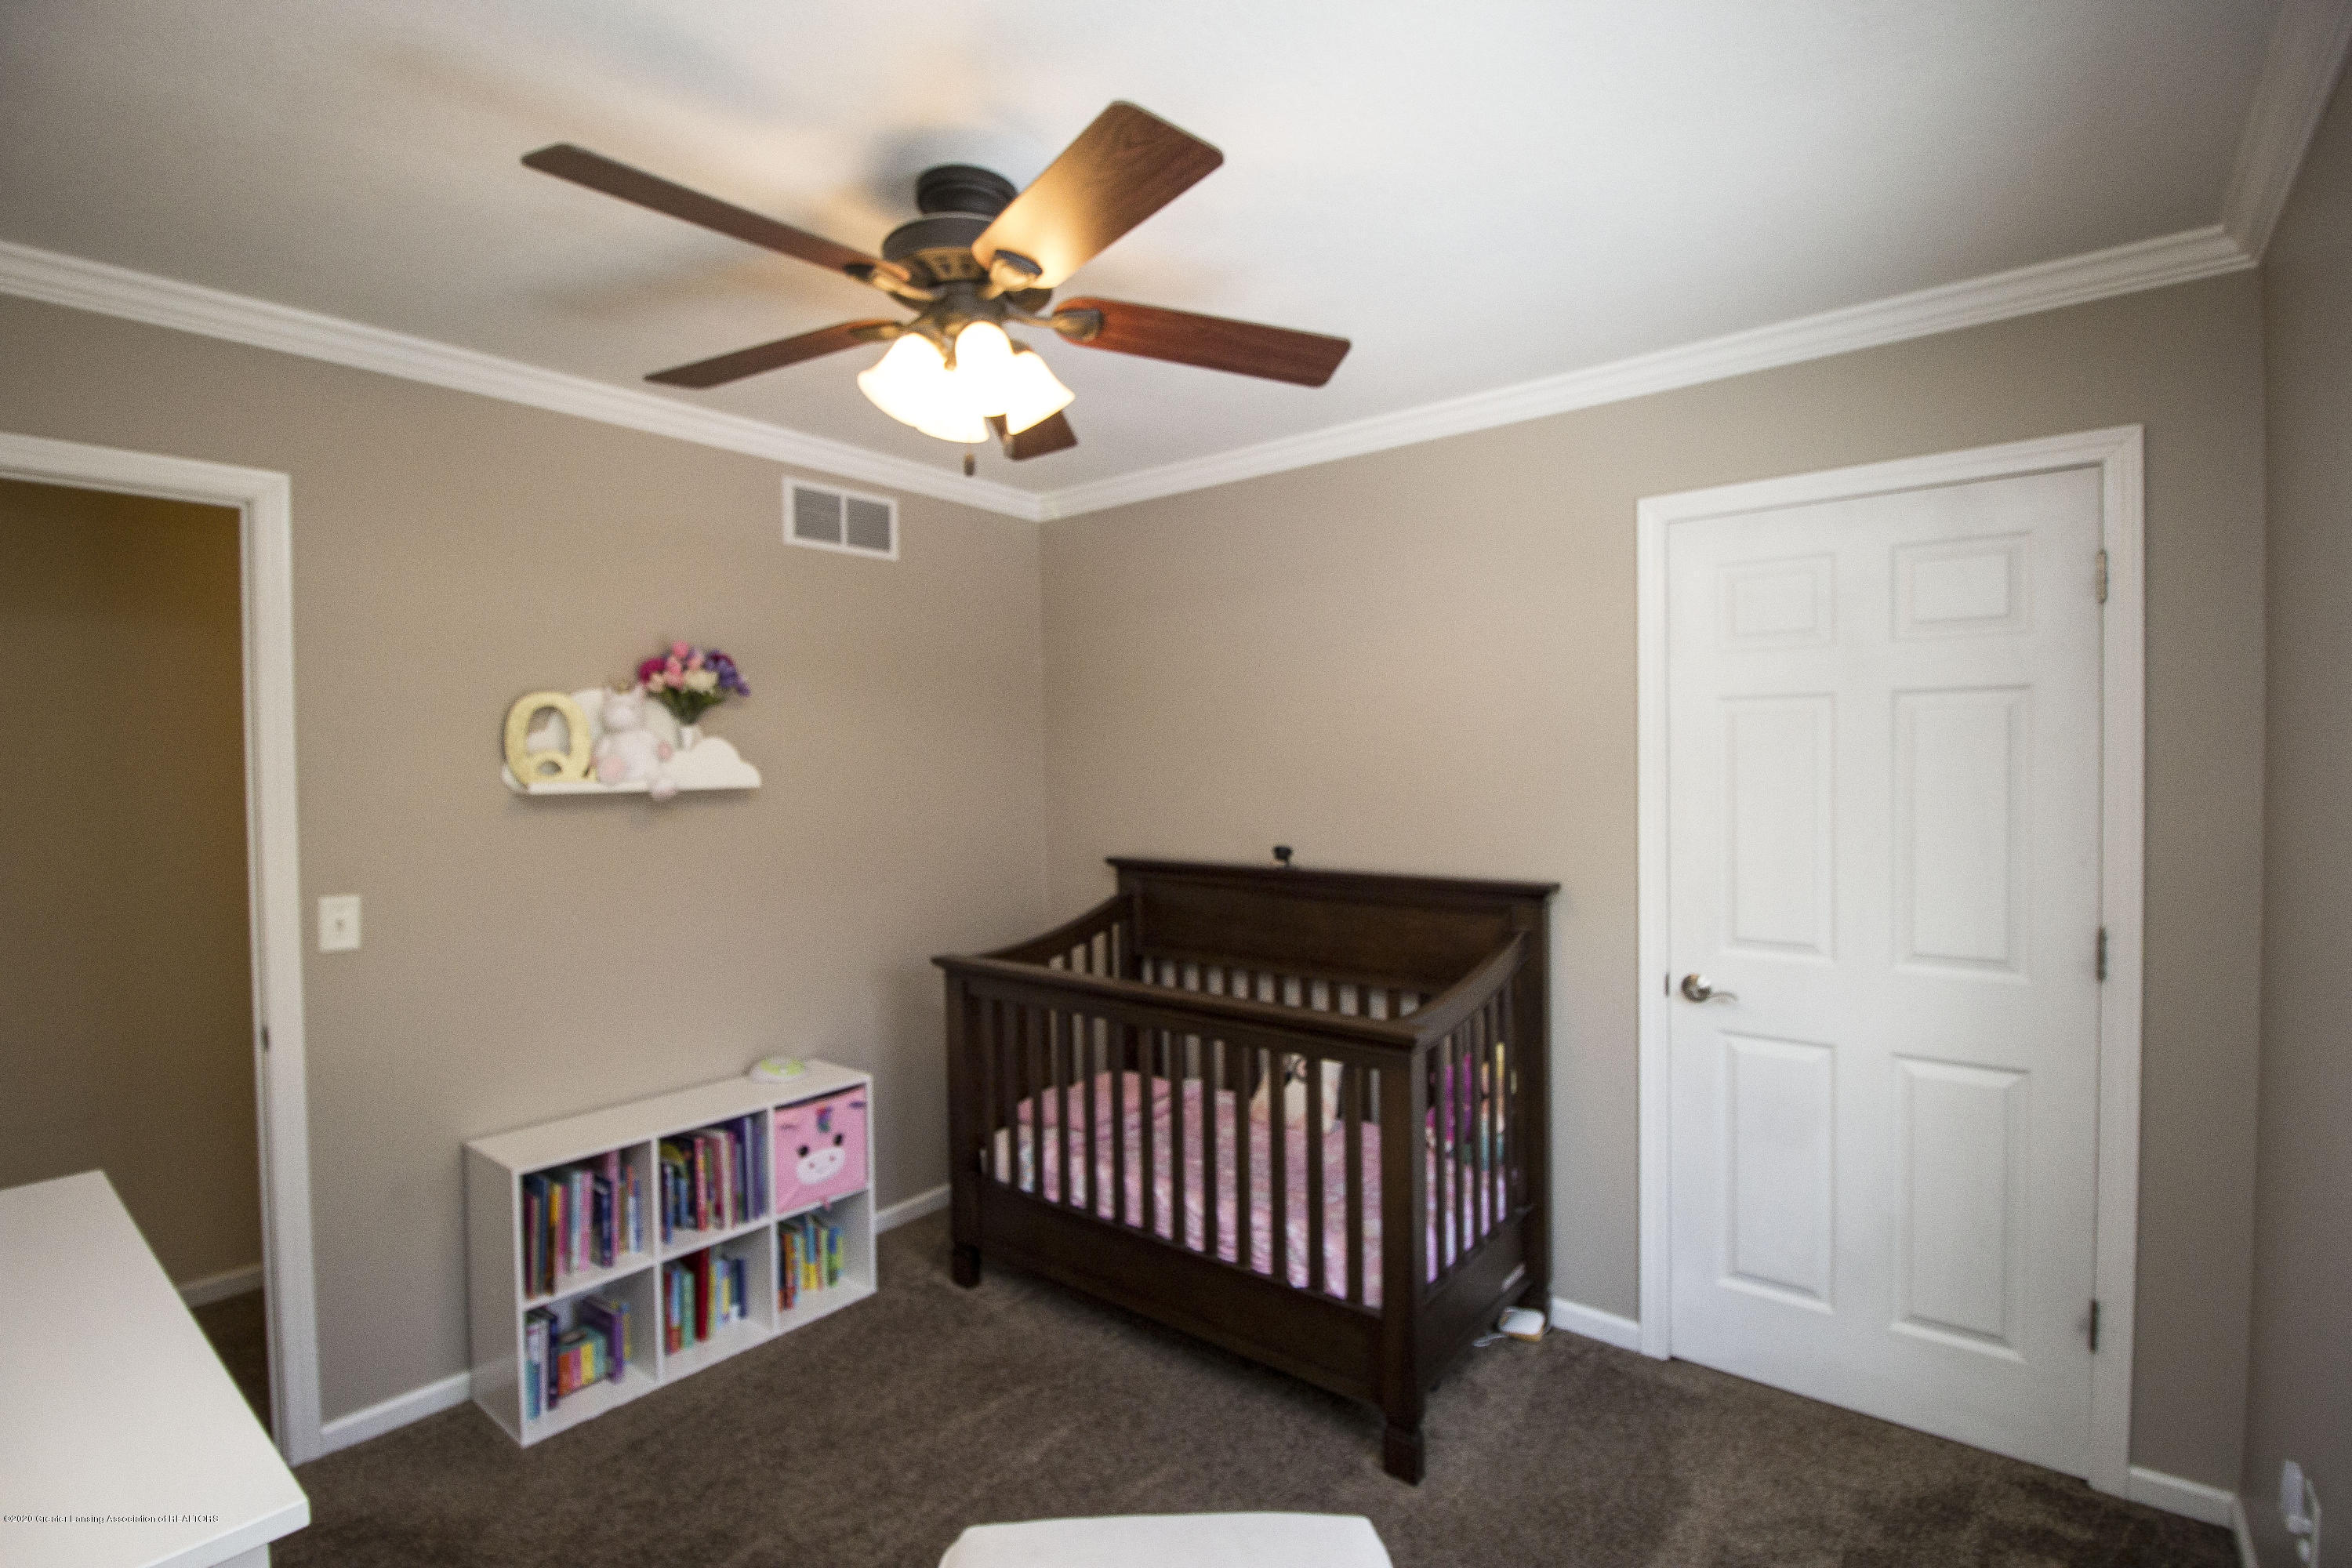 5498 Caplina Dr - Bedroom - 23